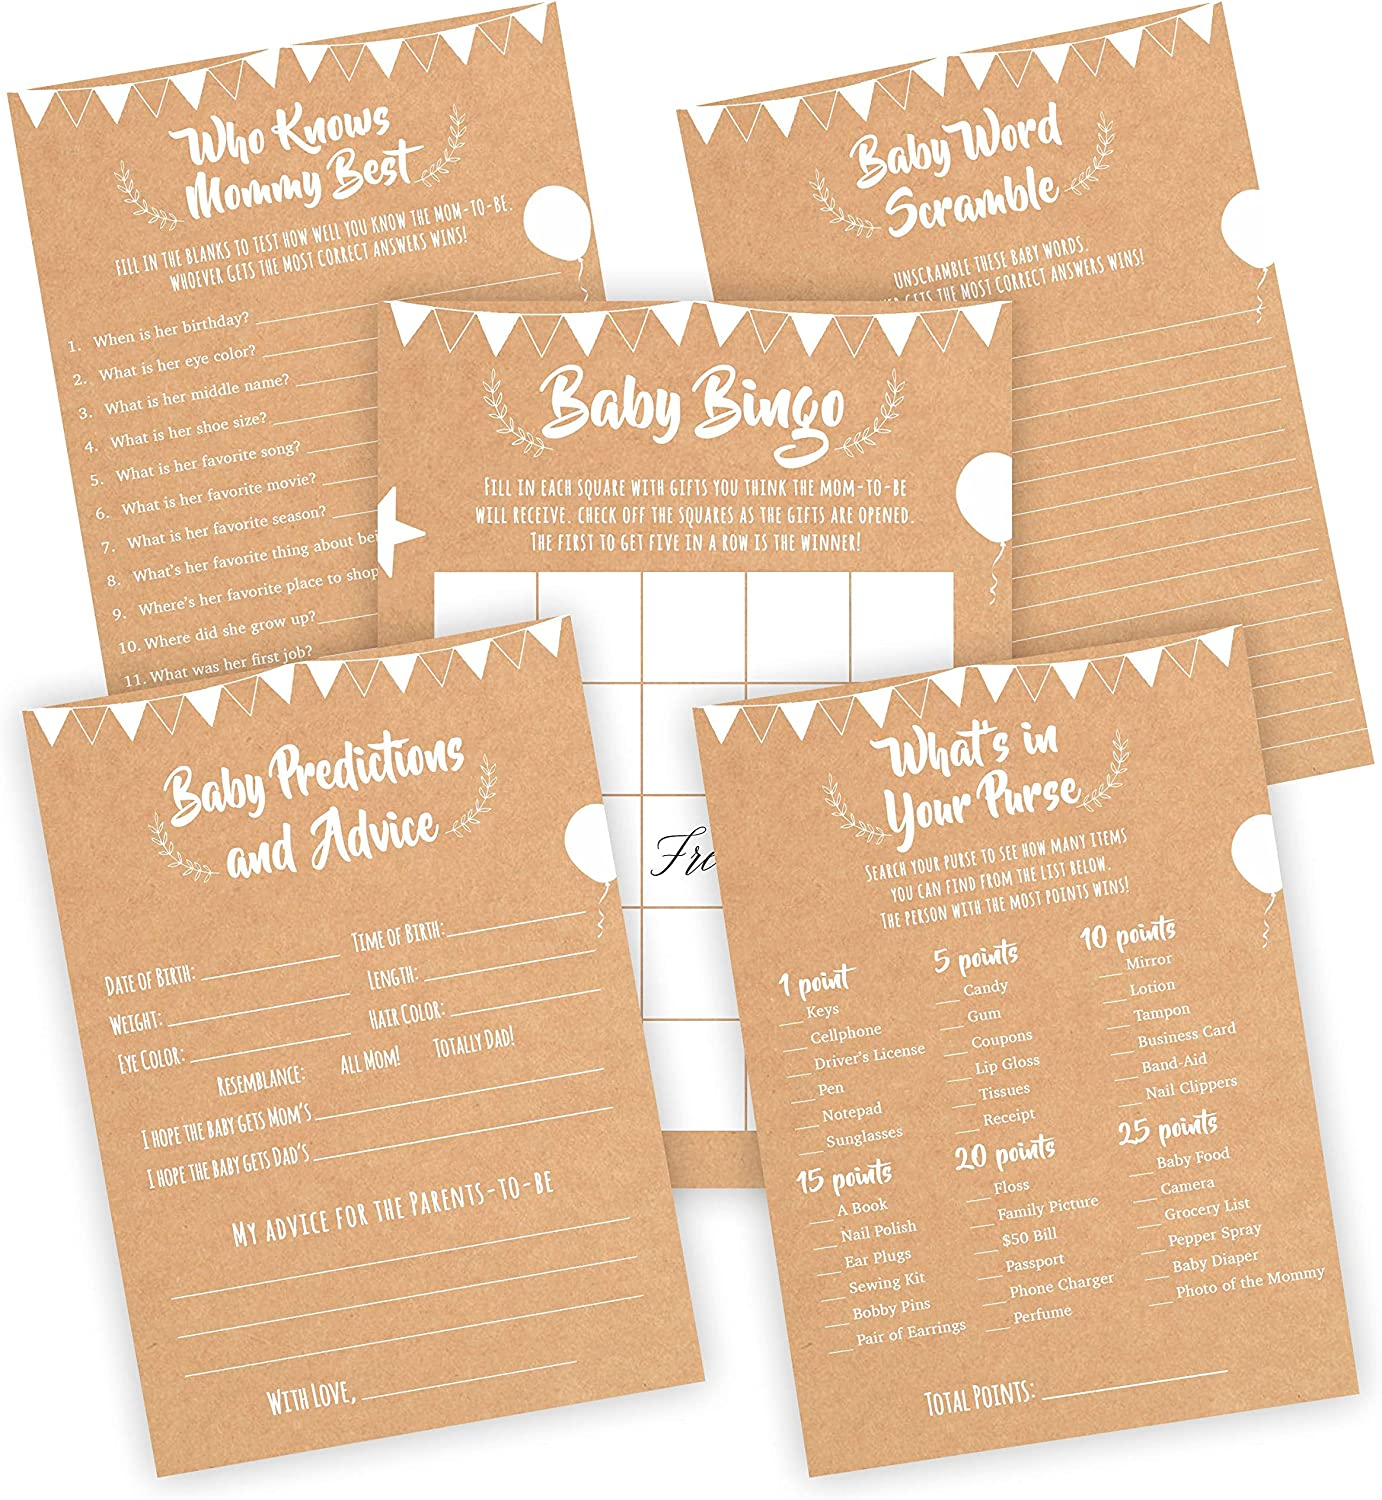 Simple-Glee Baby Shower Games Pack - 5 Fun Easy to Play Party Activities, 20 Cards Each - Bingo, Predictions, Word Scramble, Who Knows Mommy Best, and What's in Your Purse - Unique Card Game Set